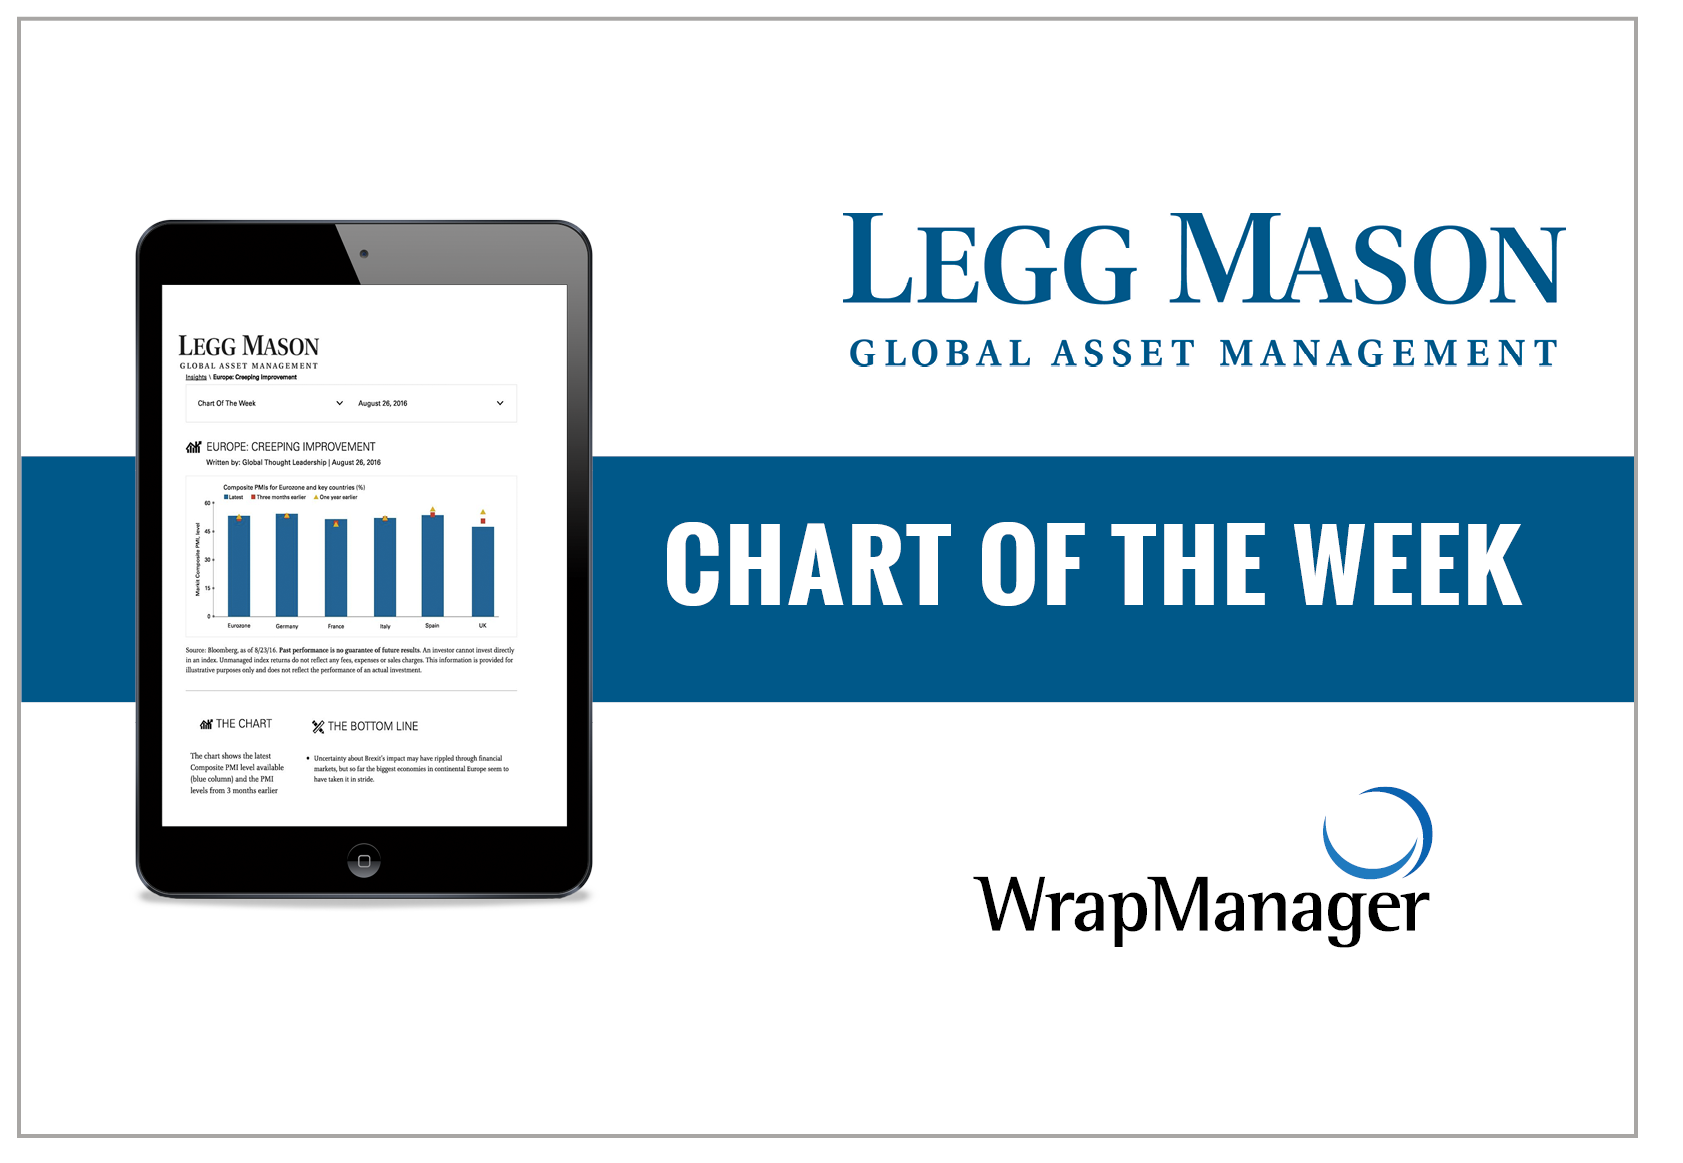 Brexit's Effect on Europe: Legg Mason Chart of the Week